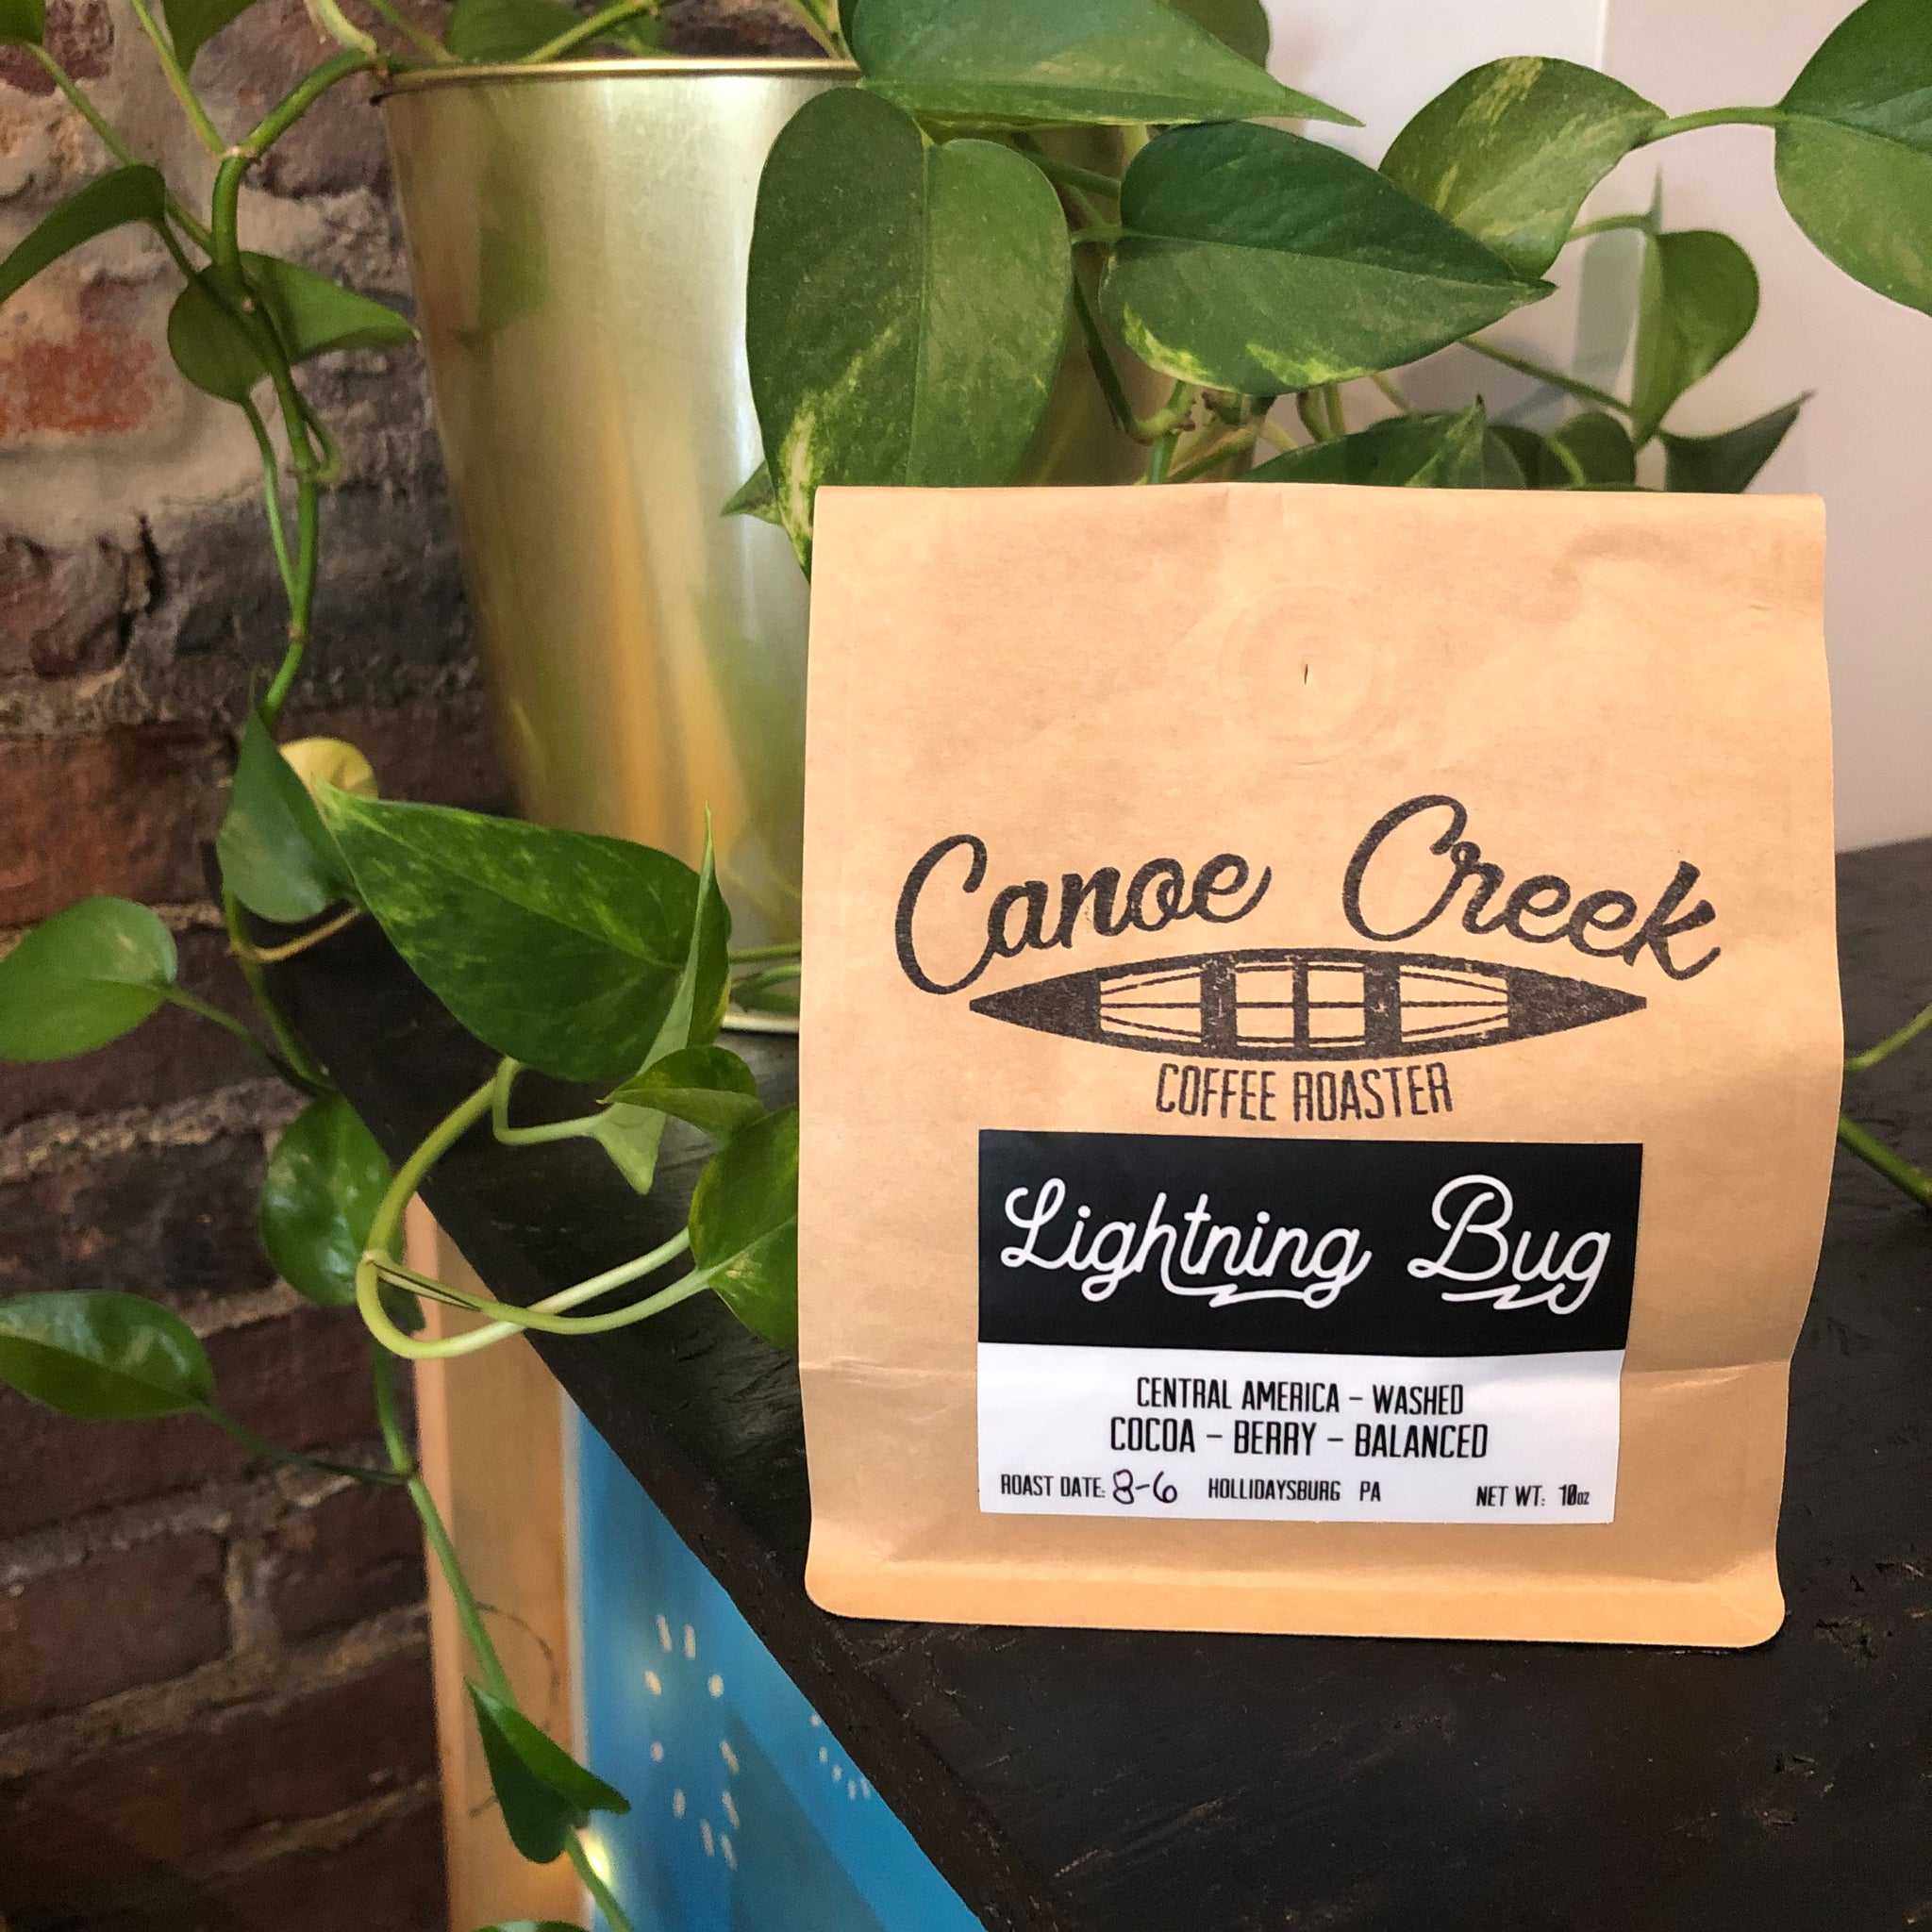 Lightning Bug Blend Coffee :: Collaboration with Canoe Creek Coffee Roaster